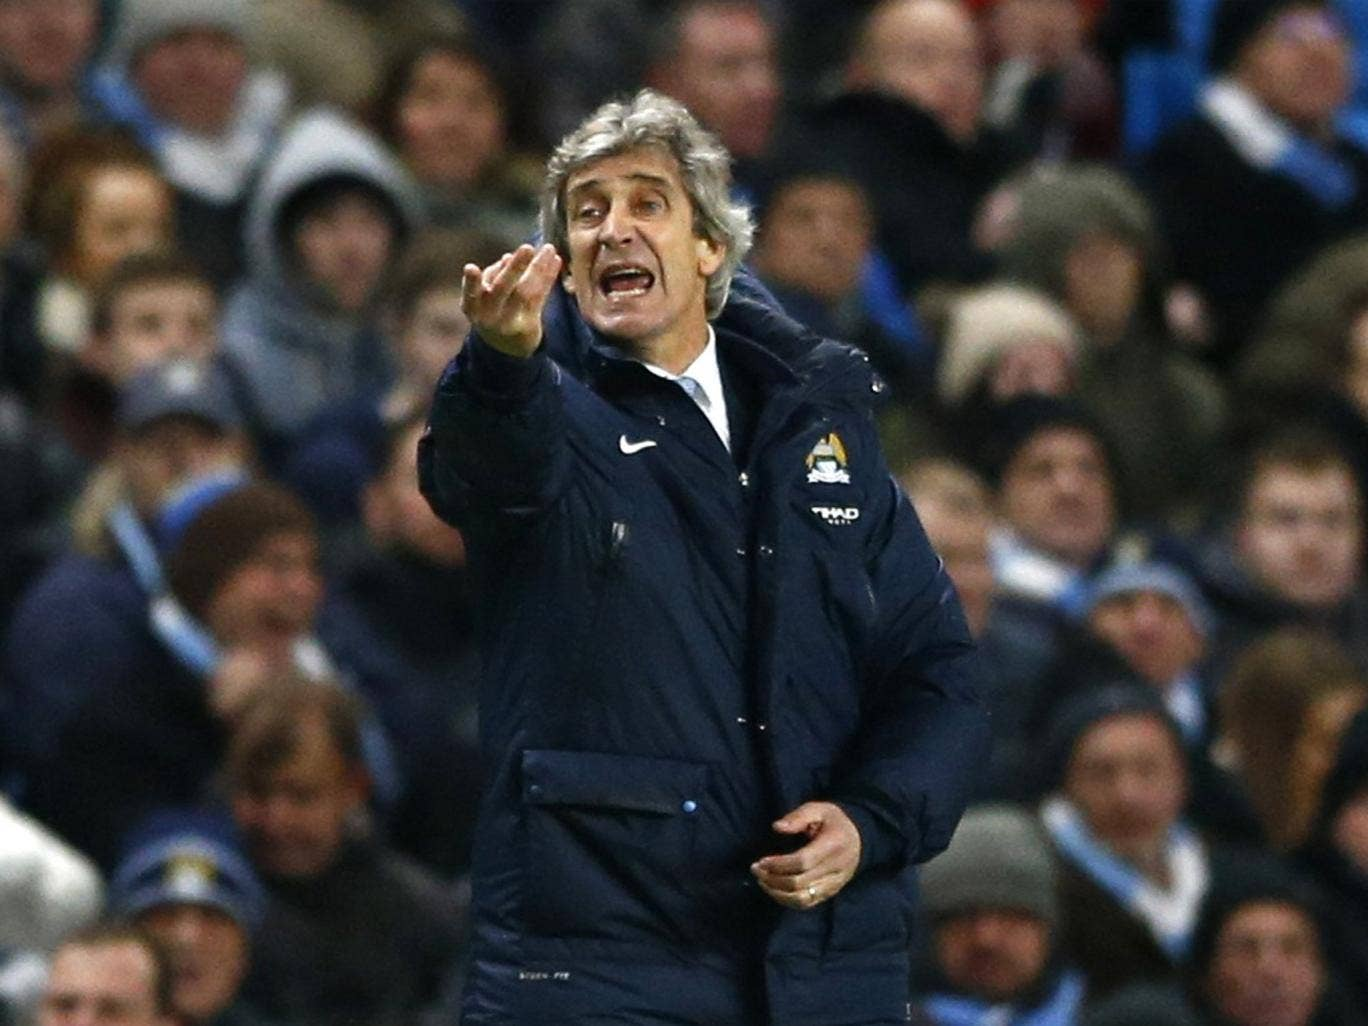 'We will see who does it better,' says Manuel Pellegrini of Chelsea's title challenge